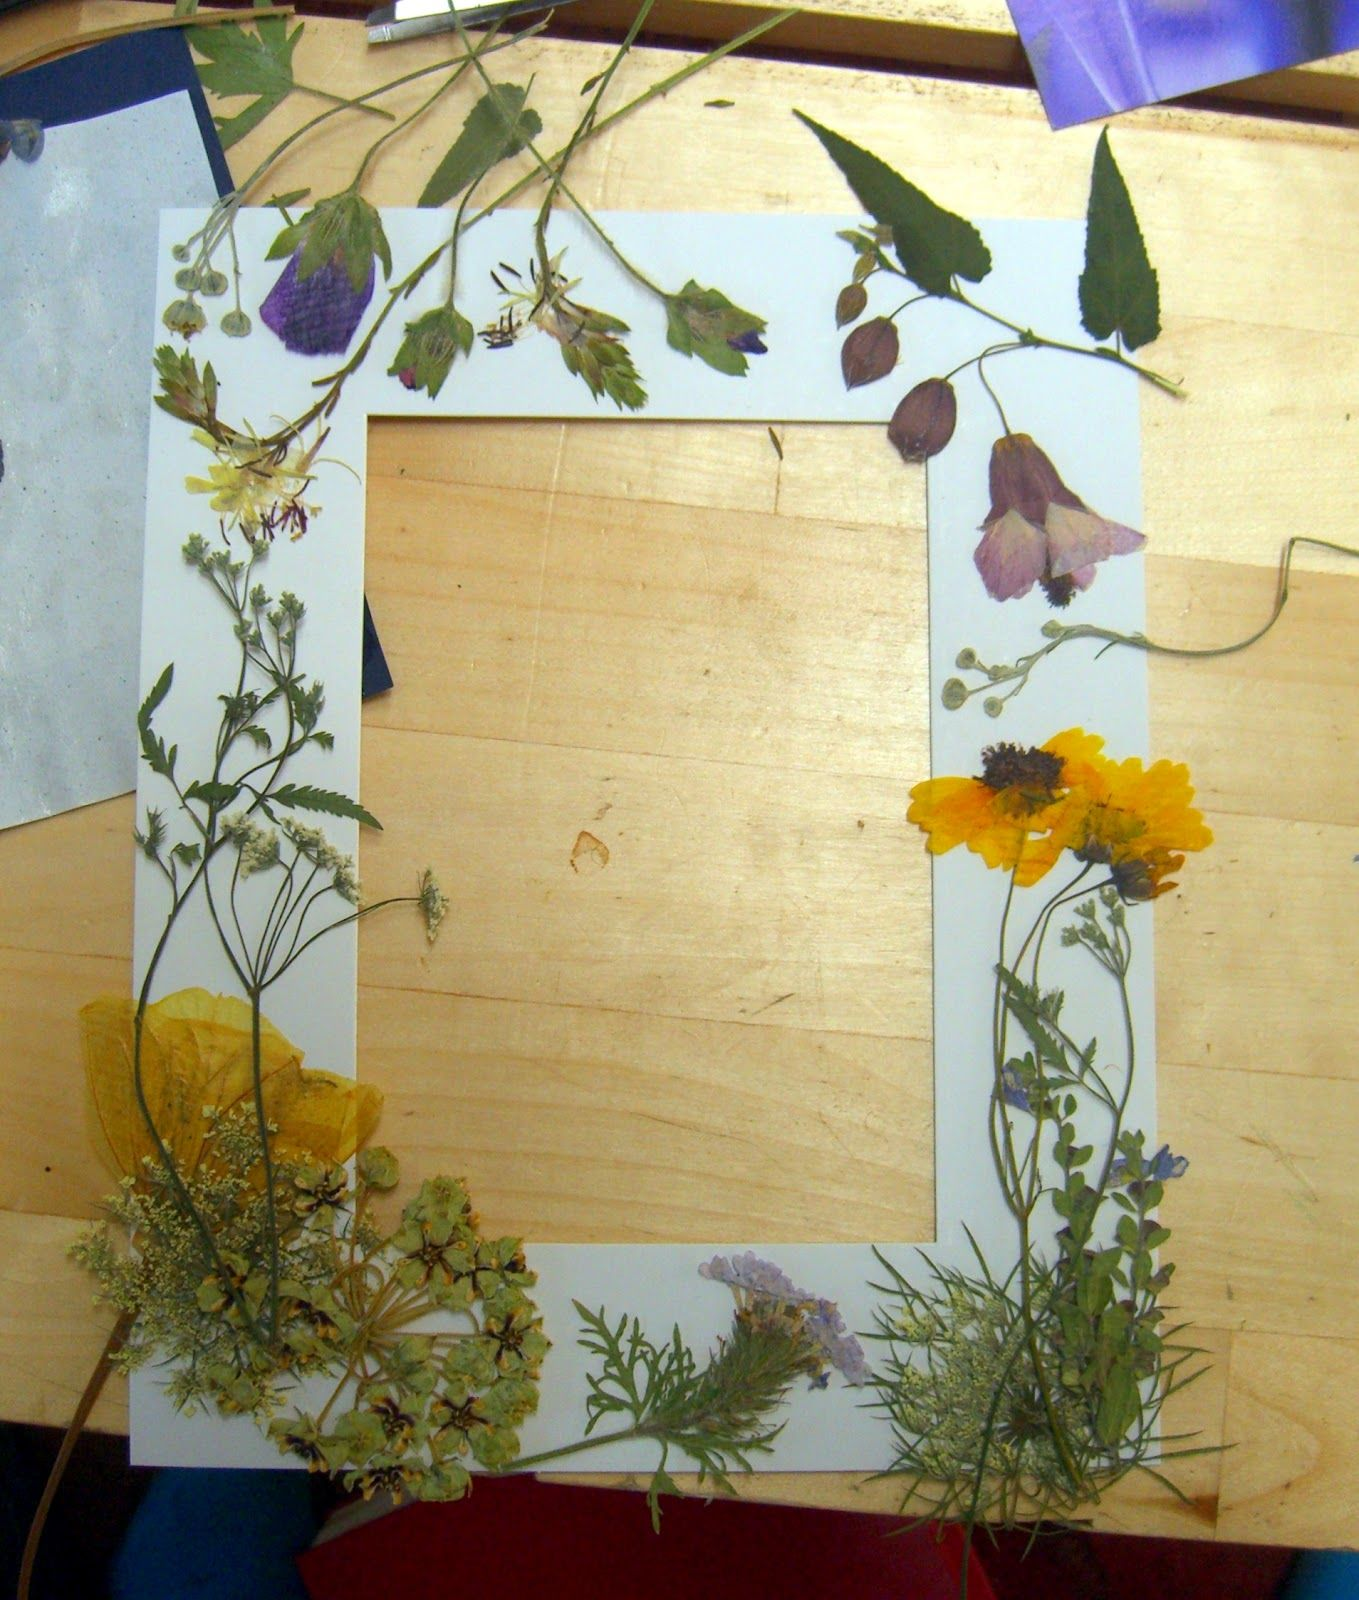 Decoupage pressed flowers to a photo mat board.